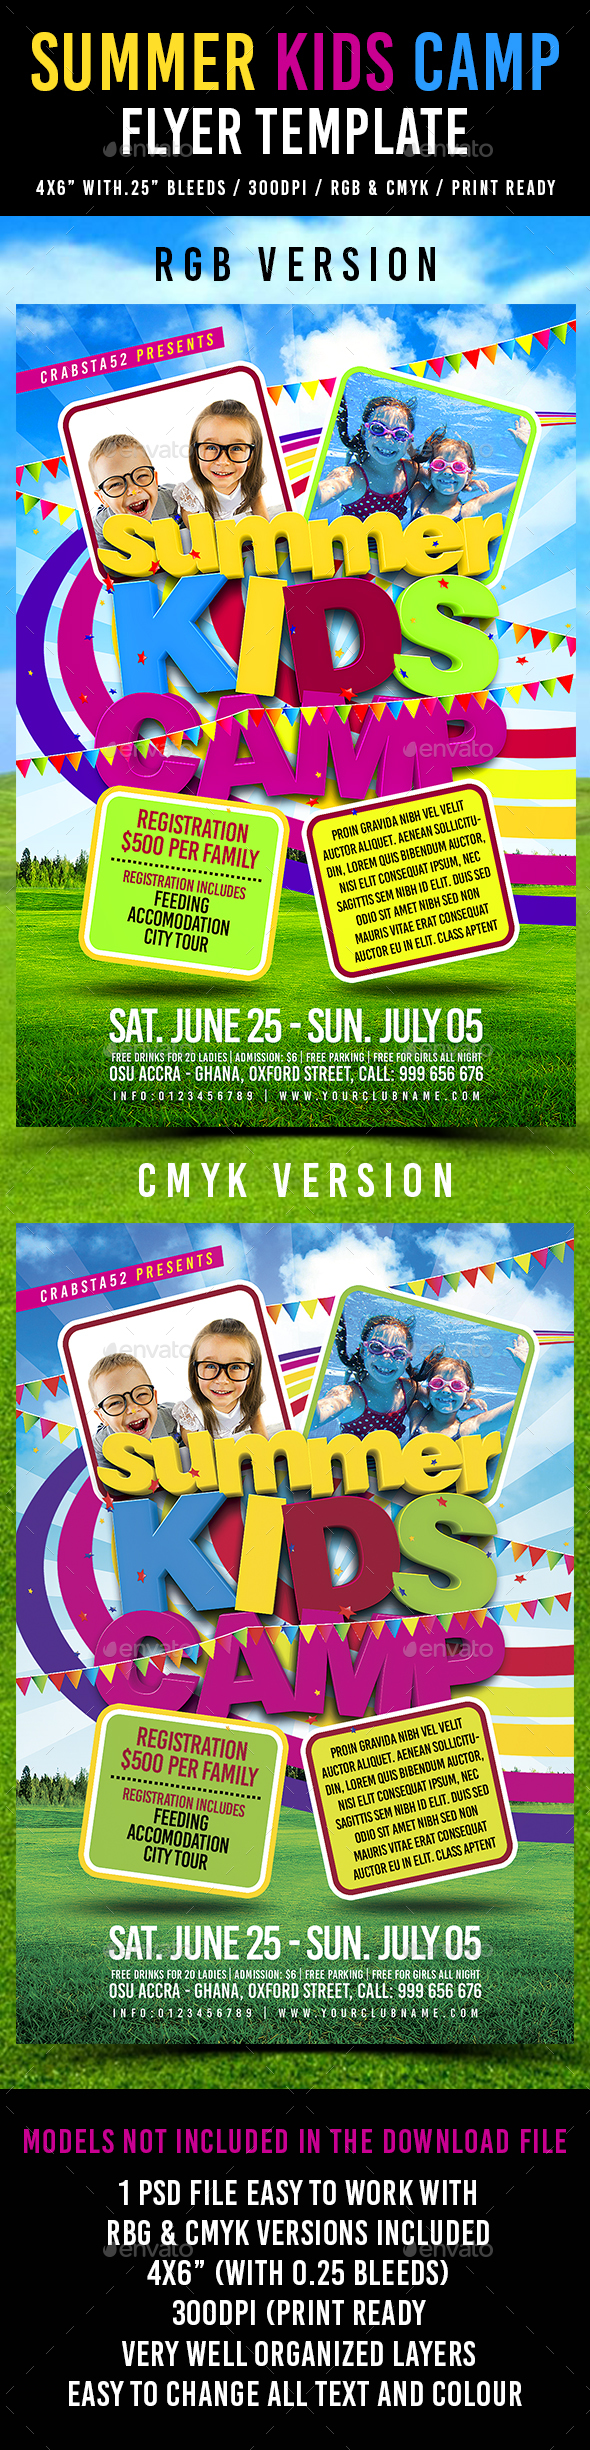 Summer Kids Camp Flyer Template